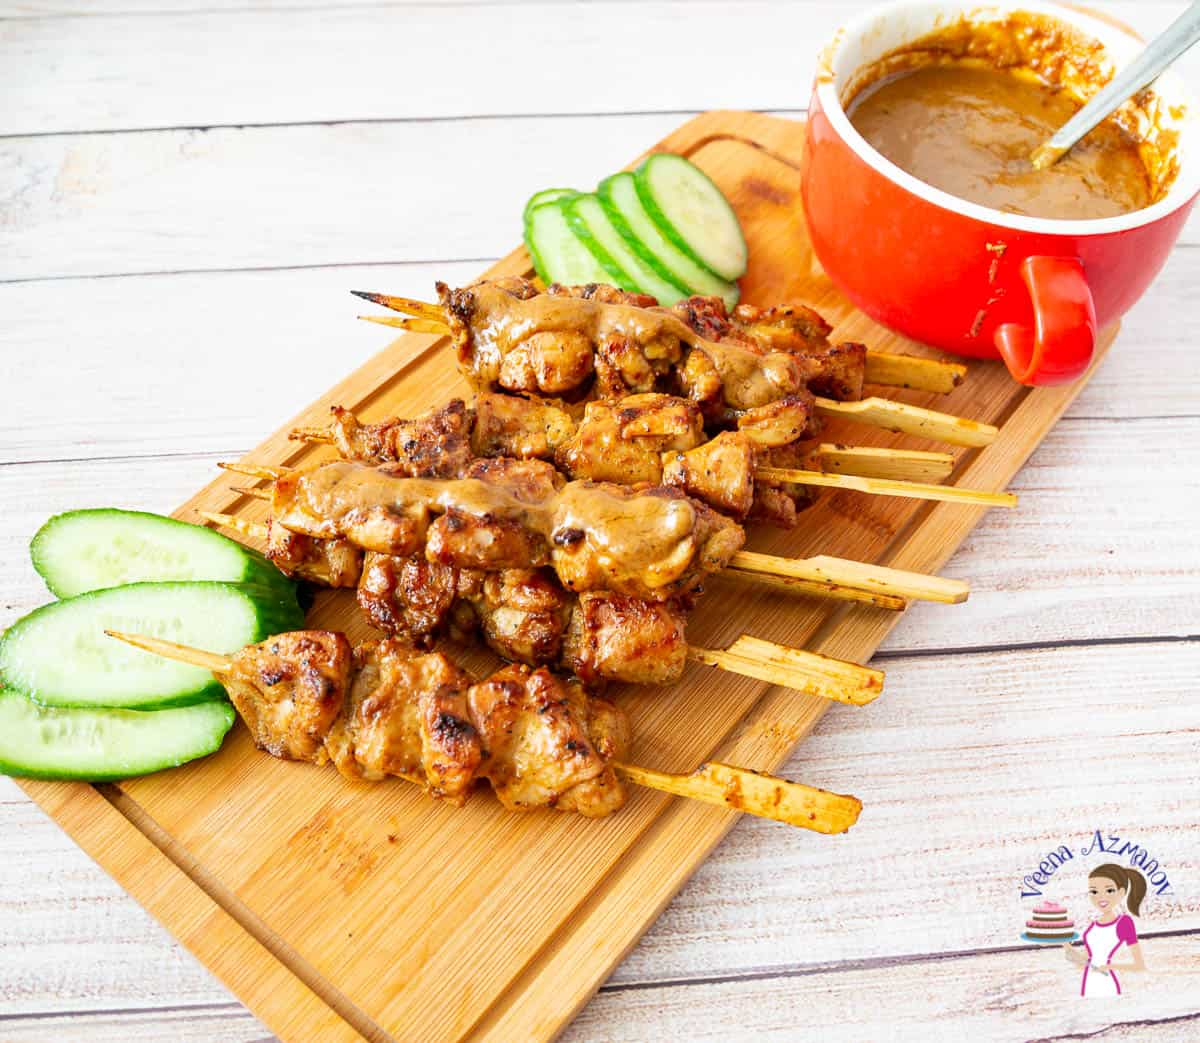 A stack of chicken skewers on a wooden tray with sliced cucumbers and a bowl of peanut sauce.